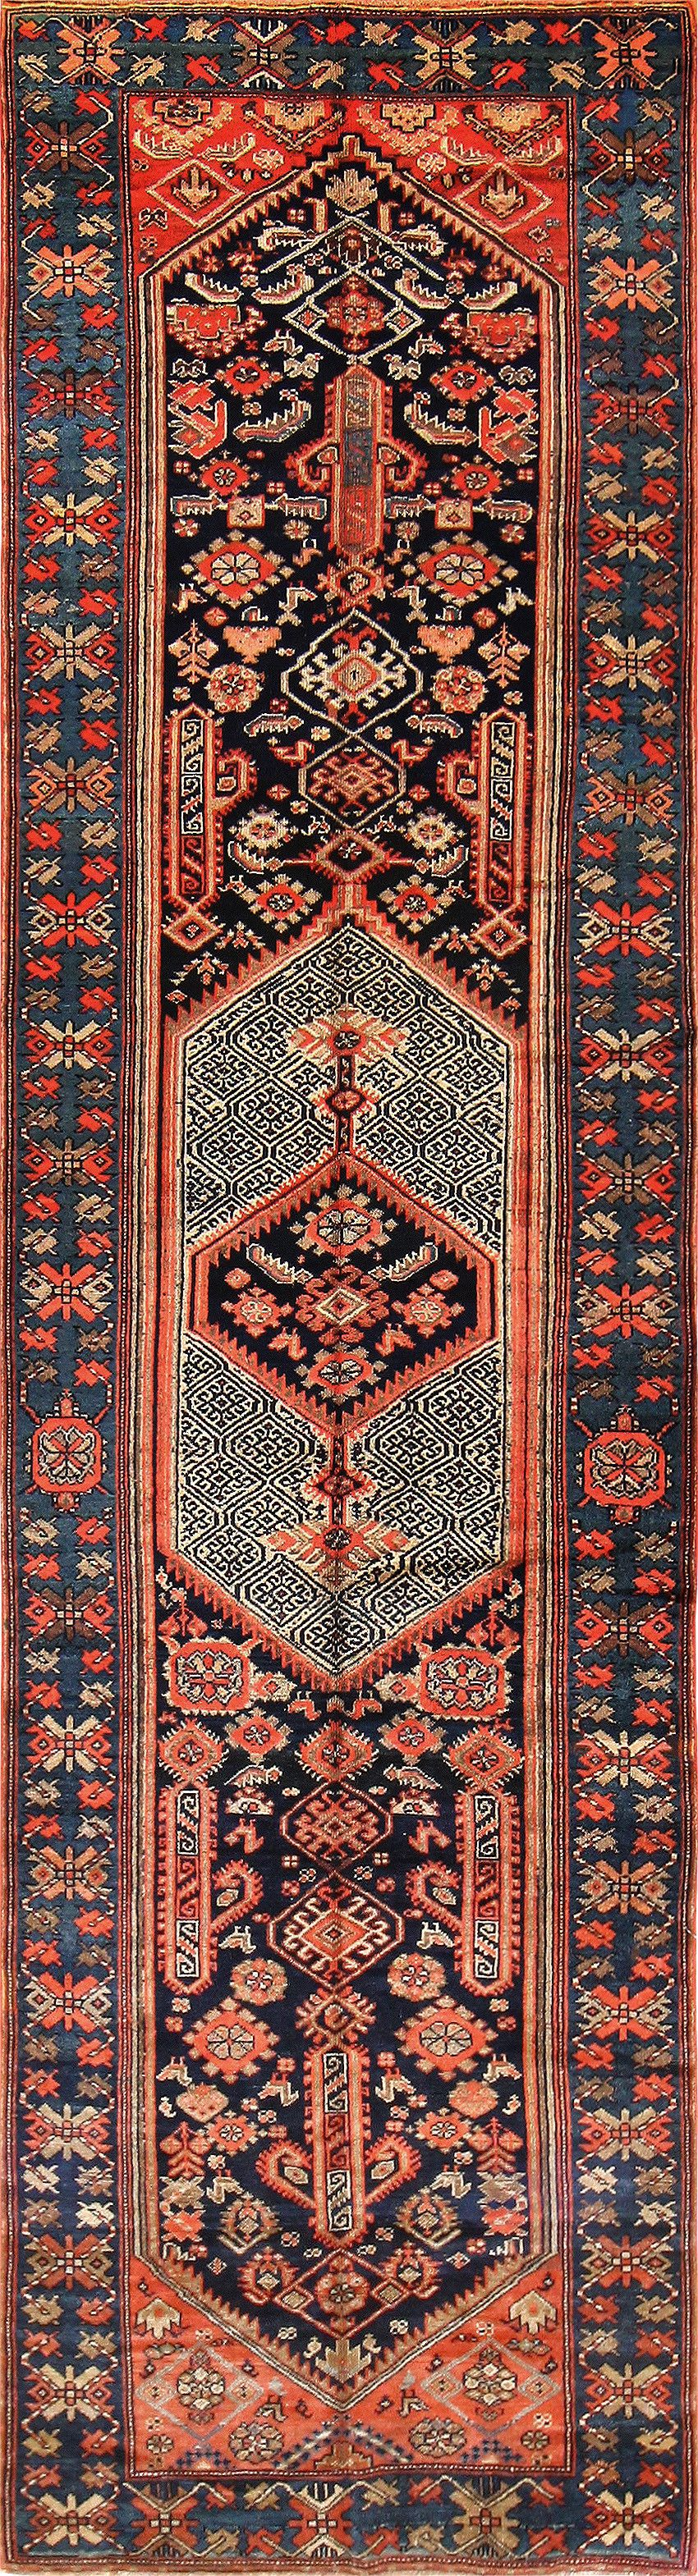 antique persian malayer runner rug 50352 nazmiyal SKZEWMW